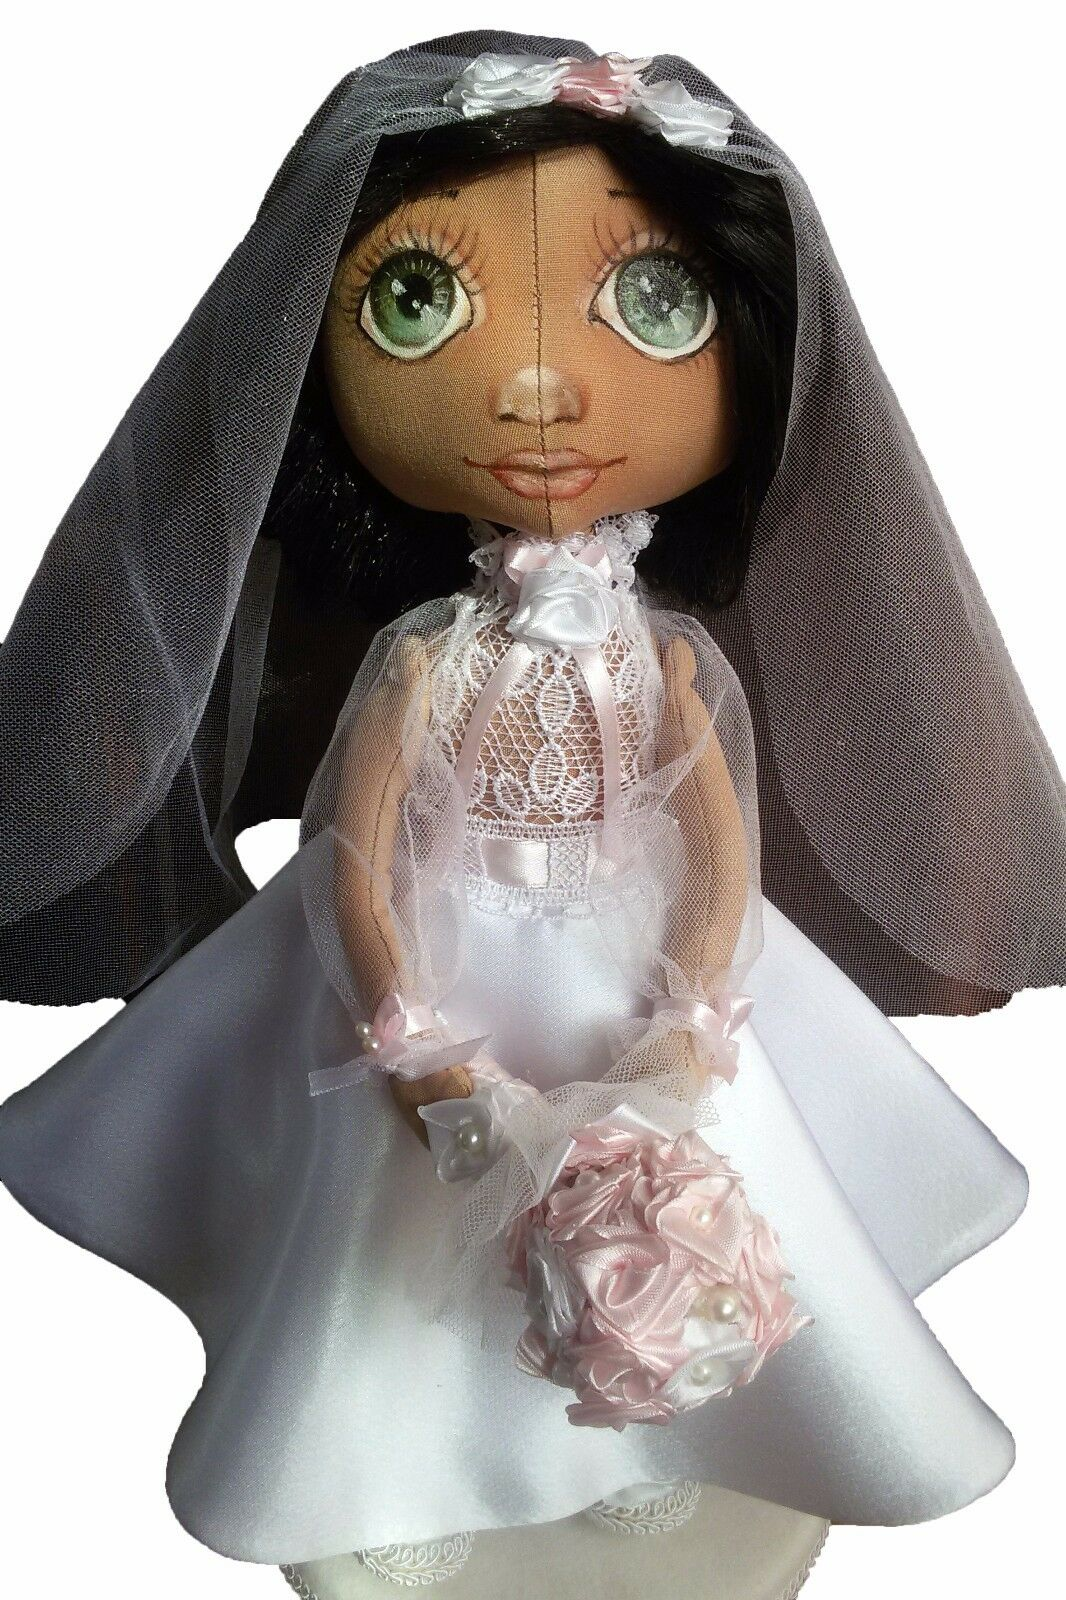 Exclusive Handmade Doll Doll Accessories Handmade Accessories Doll Bride.